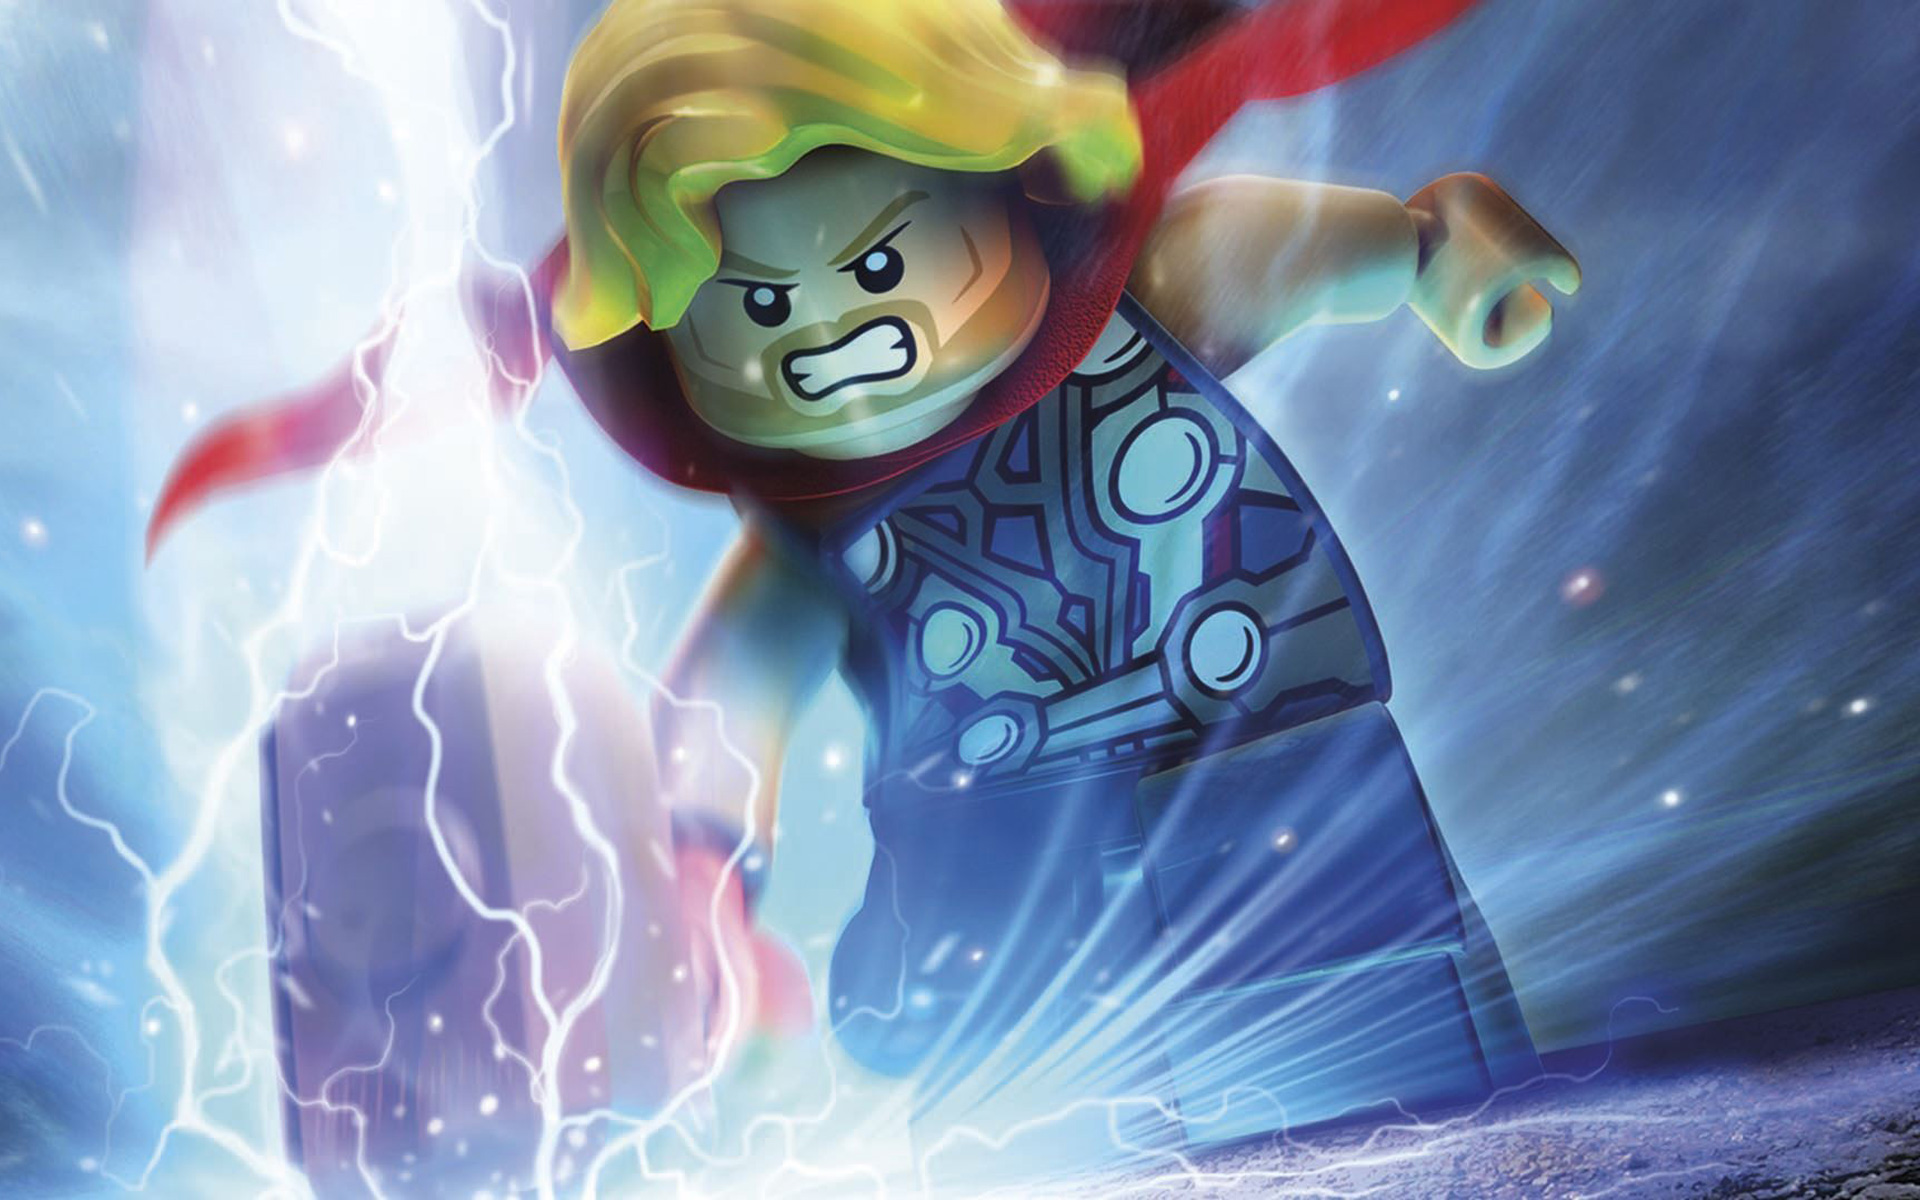 Free Lego Marvel Super Heroes Wallpaper in 1920x1200